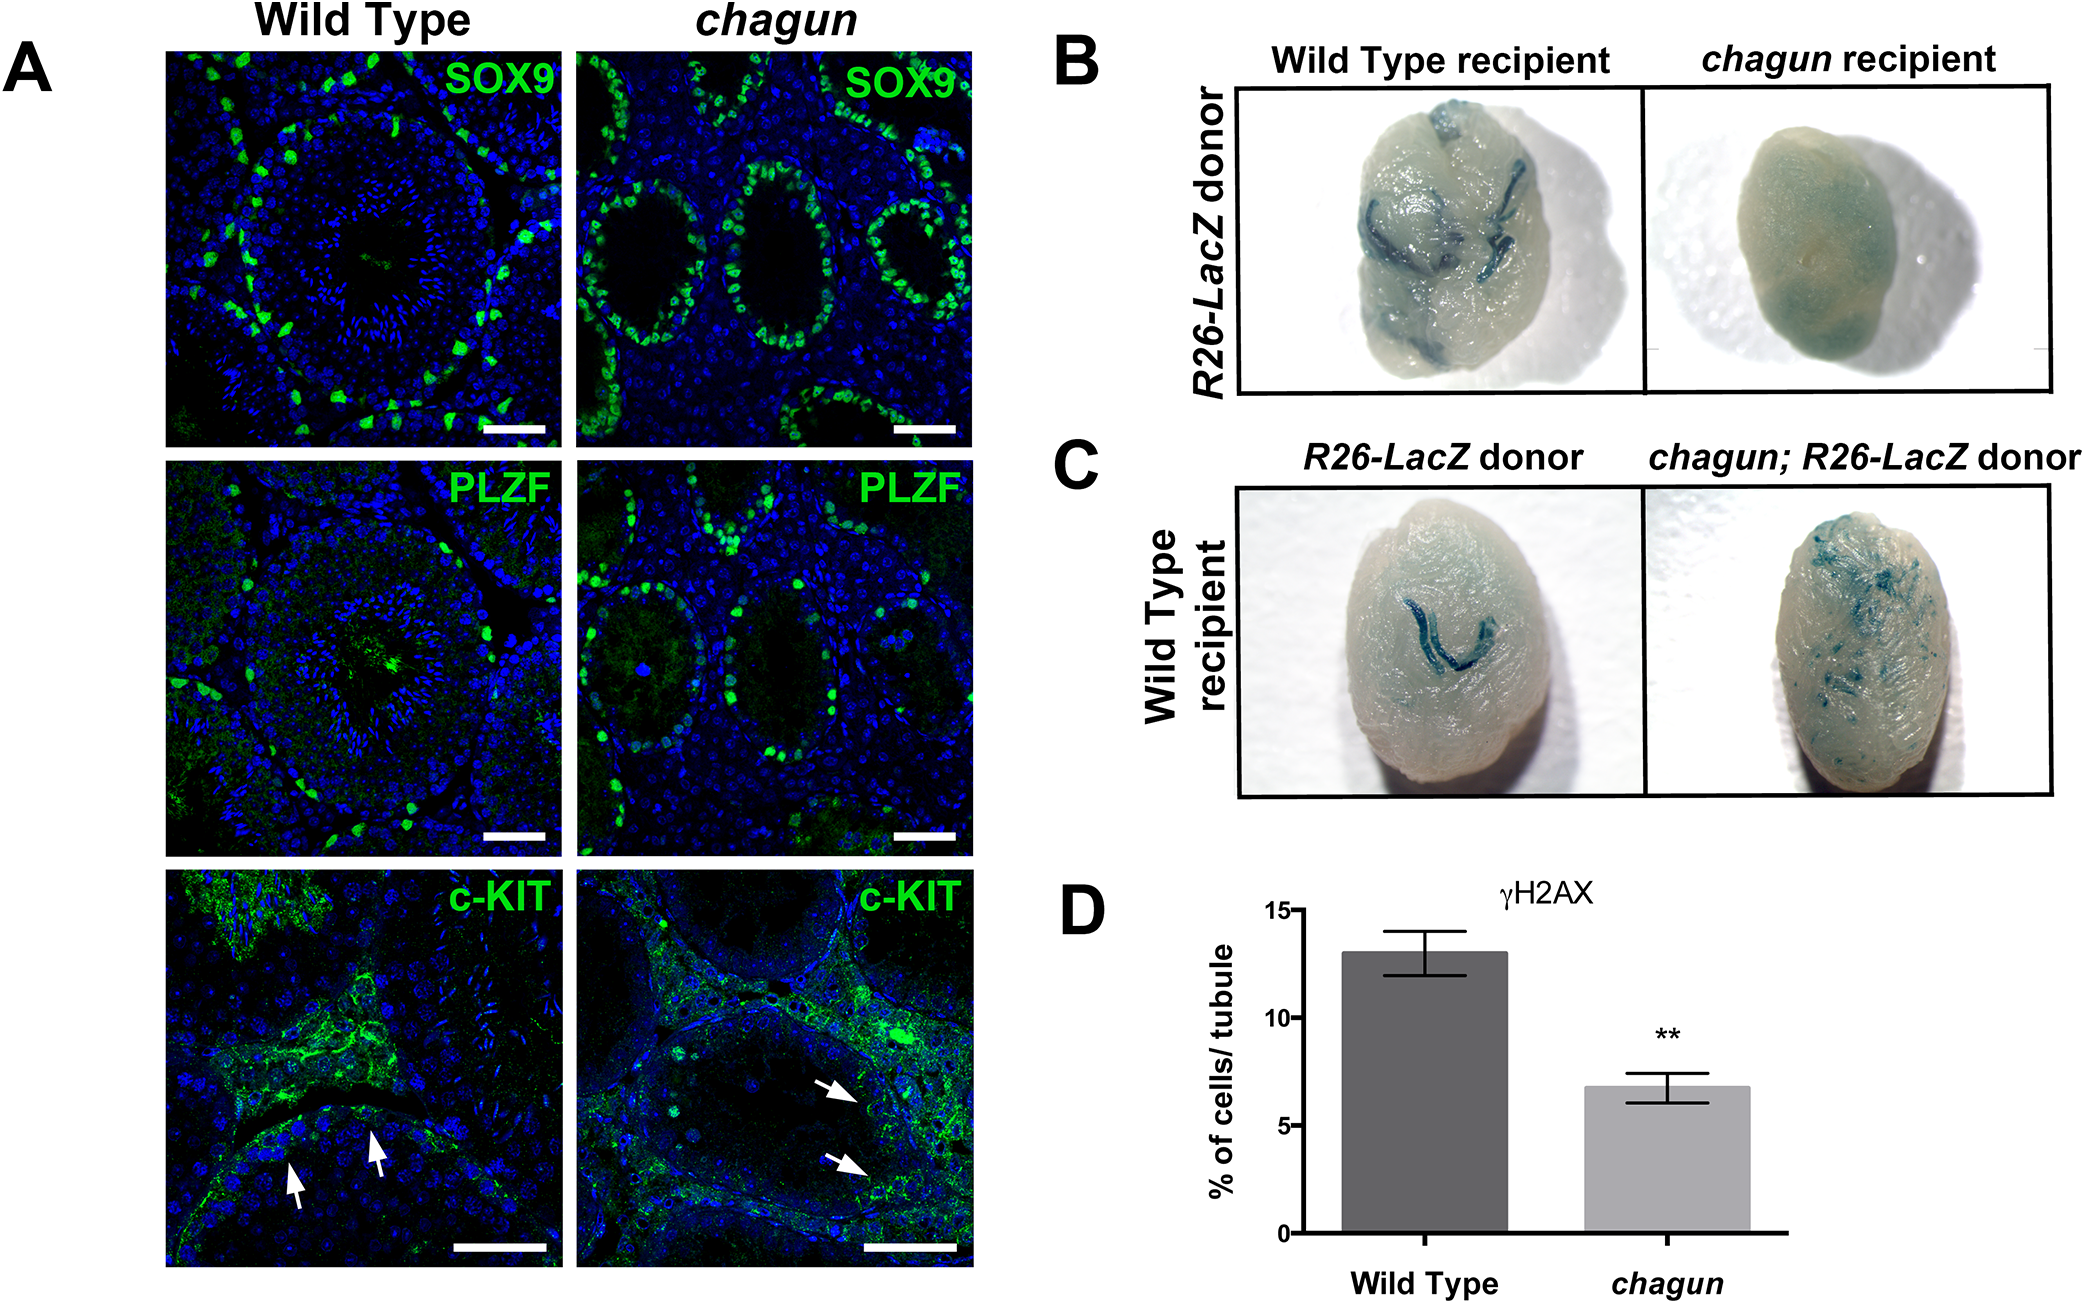 Spermatogonial stem cell (SSCs) transplants reveal Sertoli cell and germ cell defects in <i>Poc1a</i><sup>cha/cha</sup> mice.